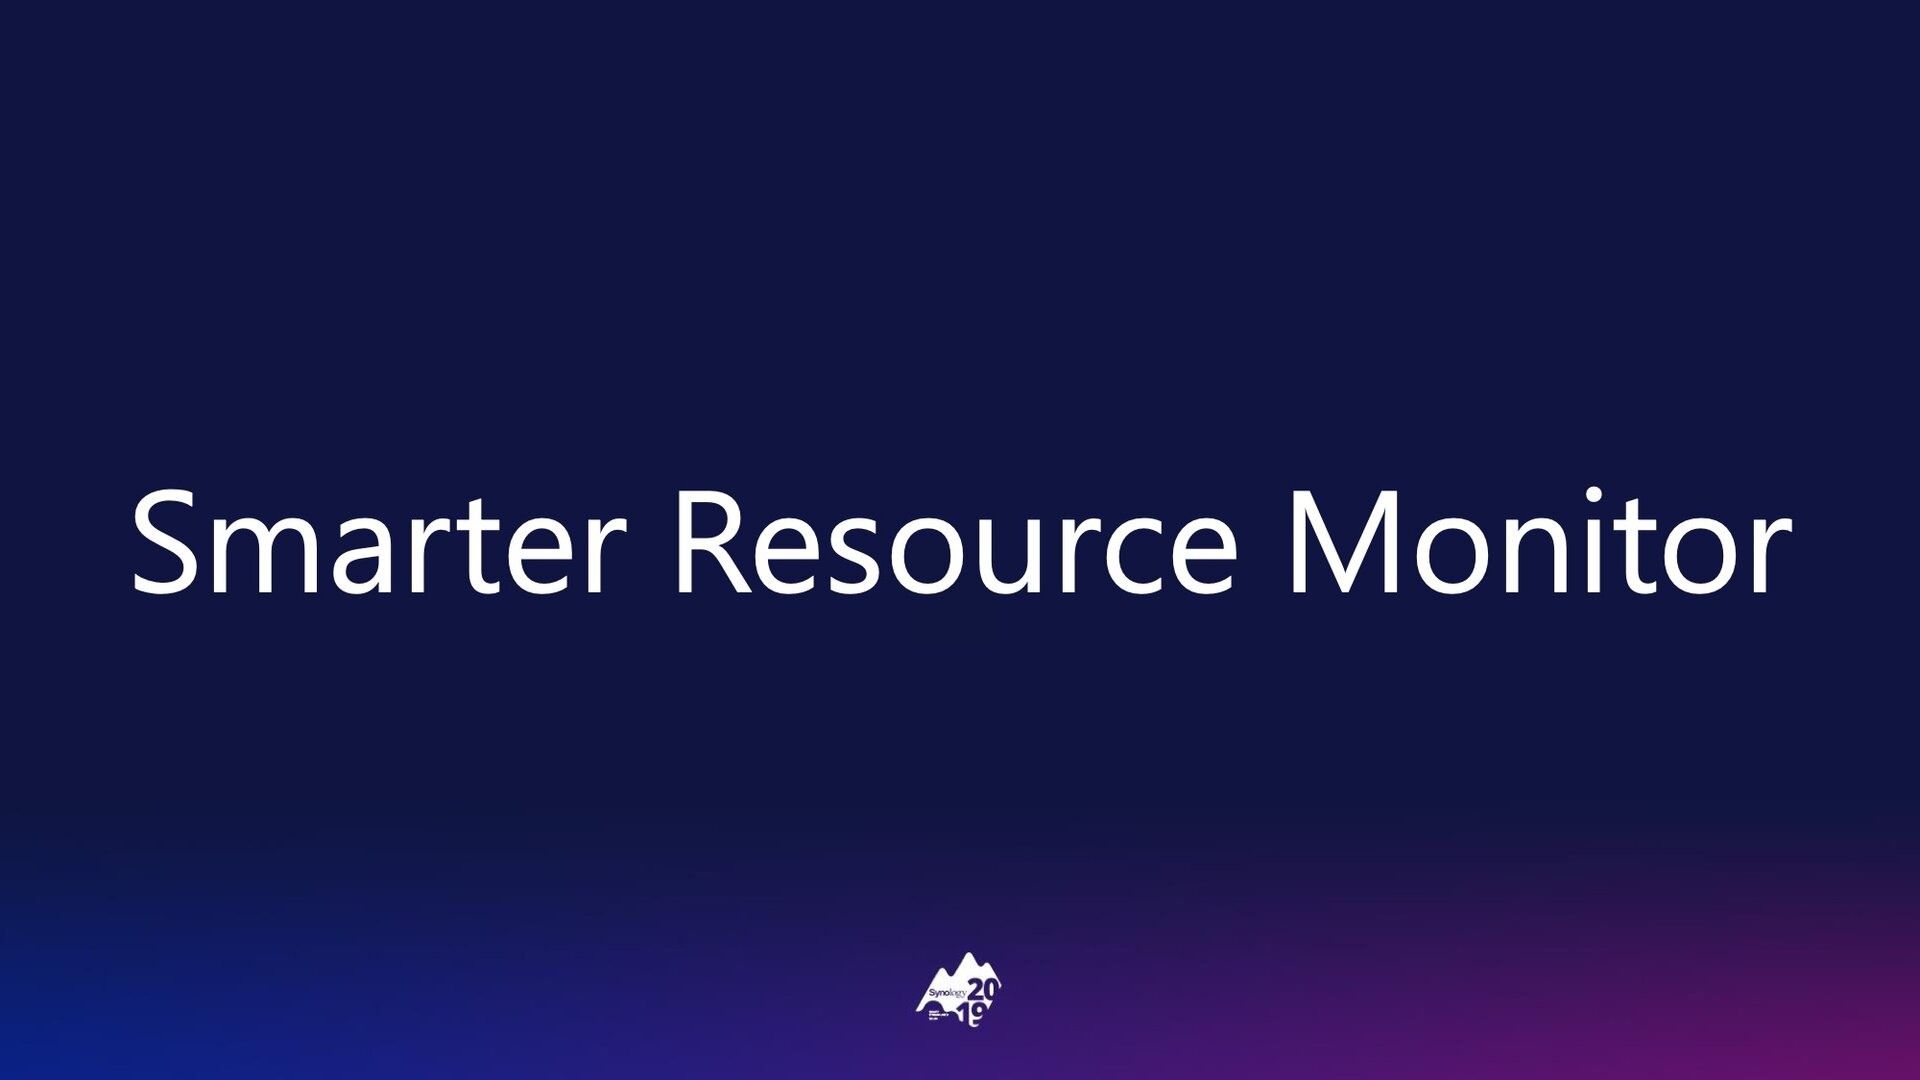 DSM 7.0: Resource Monitor